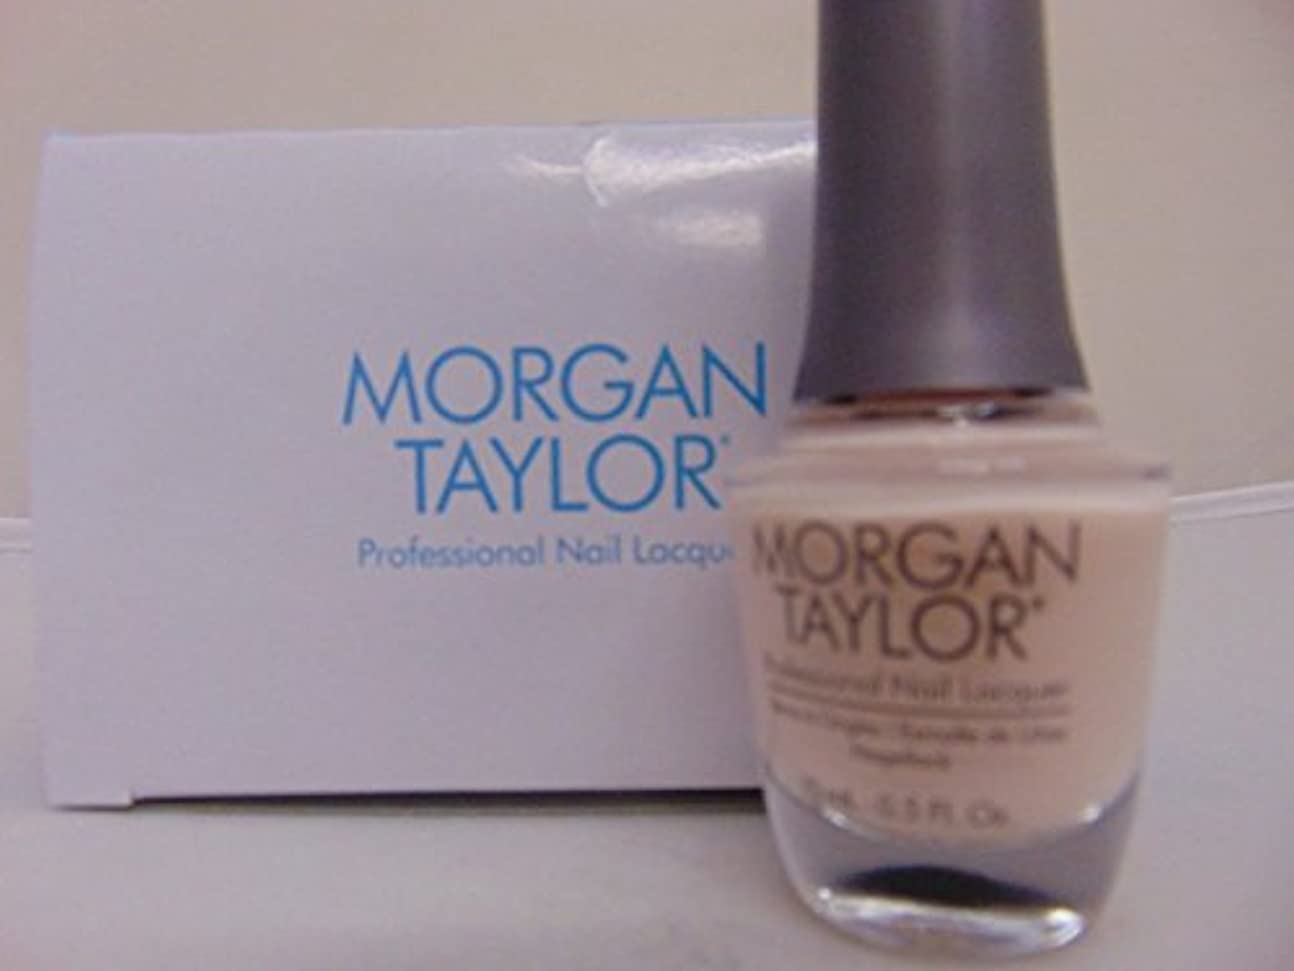 Morgan Taylor - Professional Nail Lacquer - Simply Irresistible - 15 mL / 0.5oz